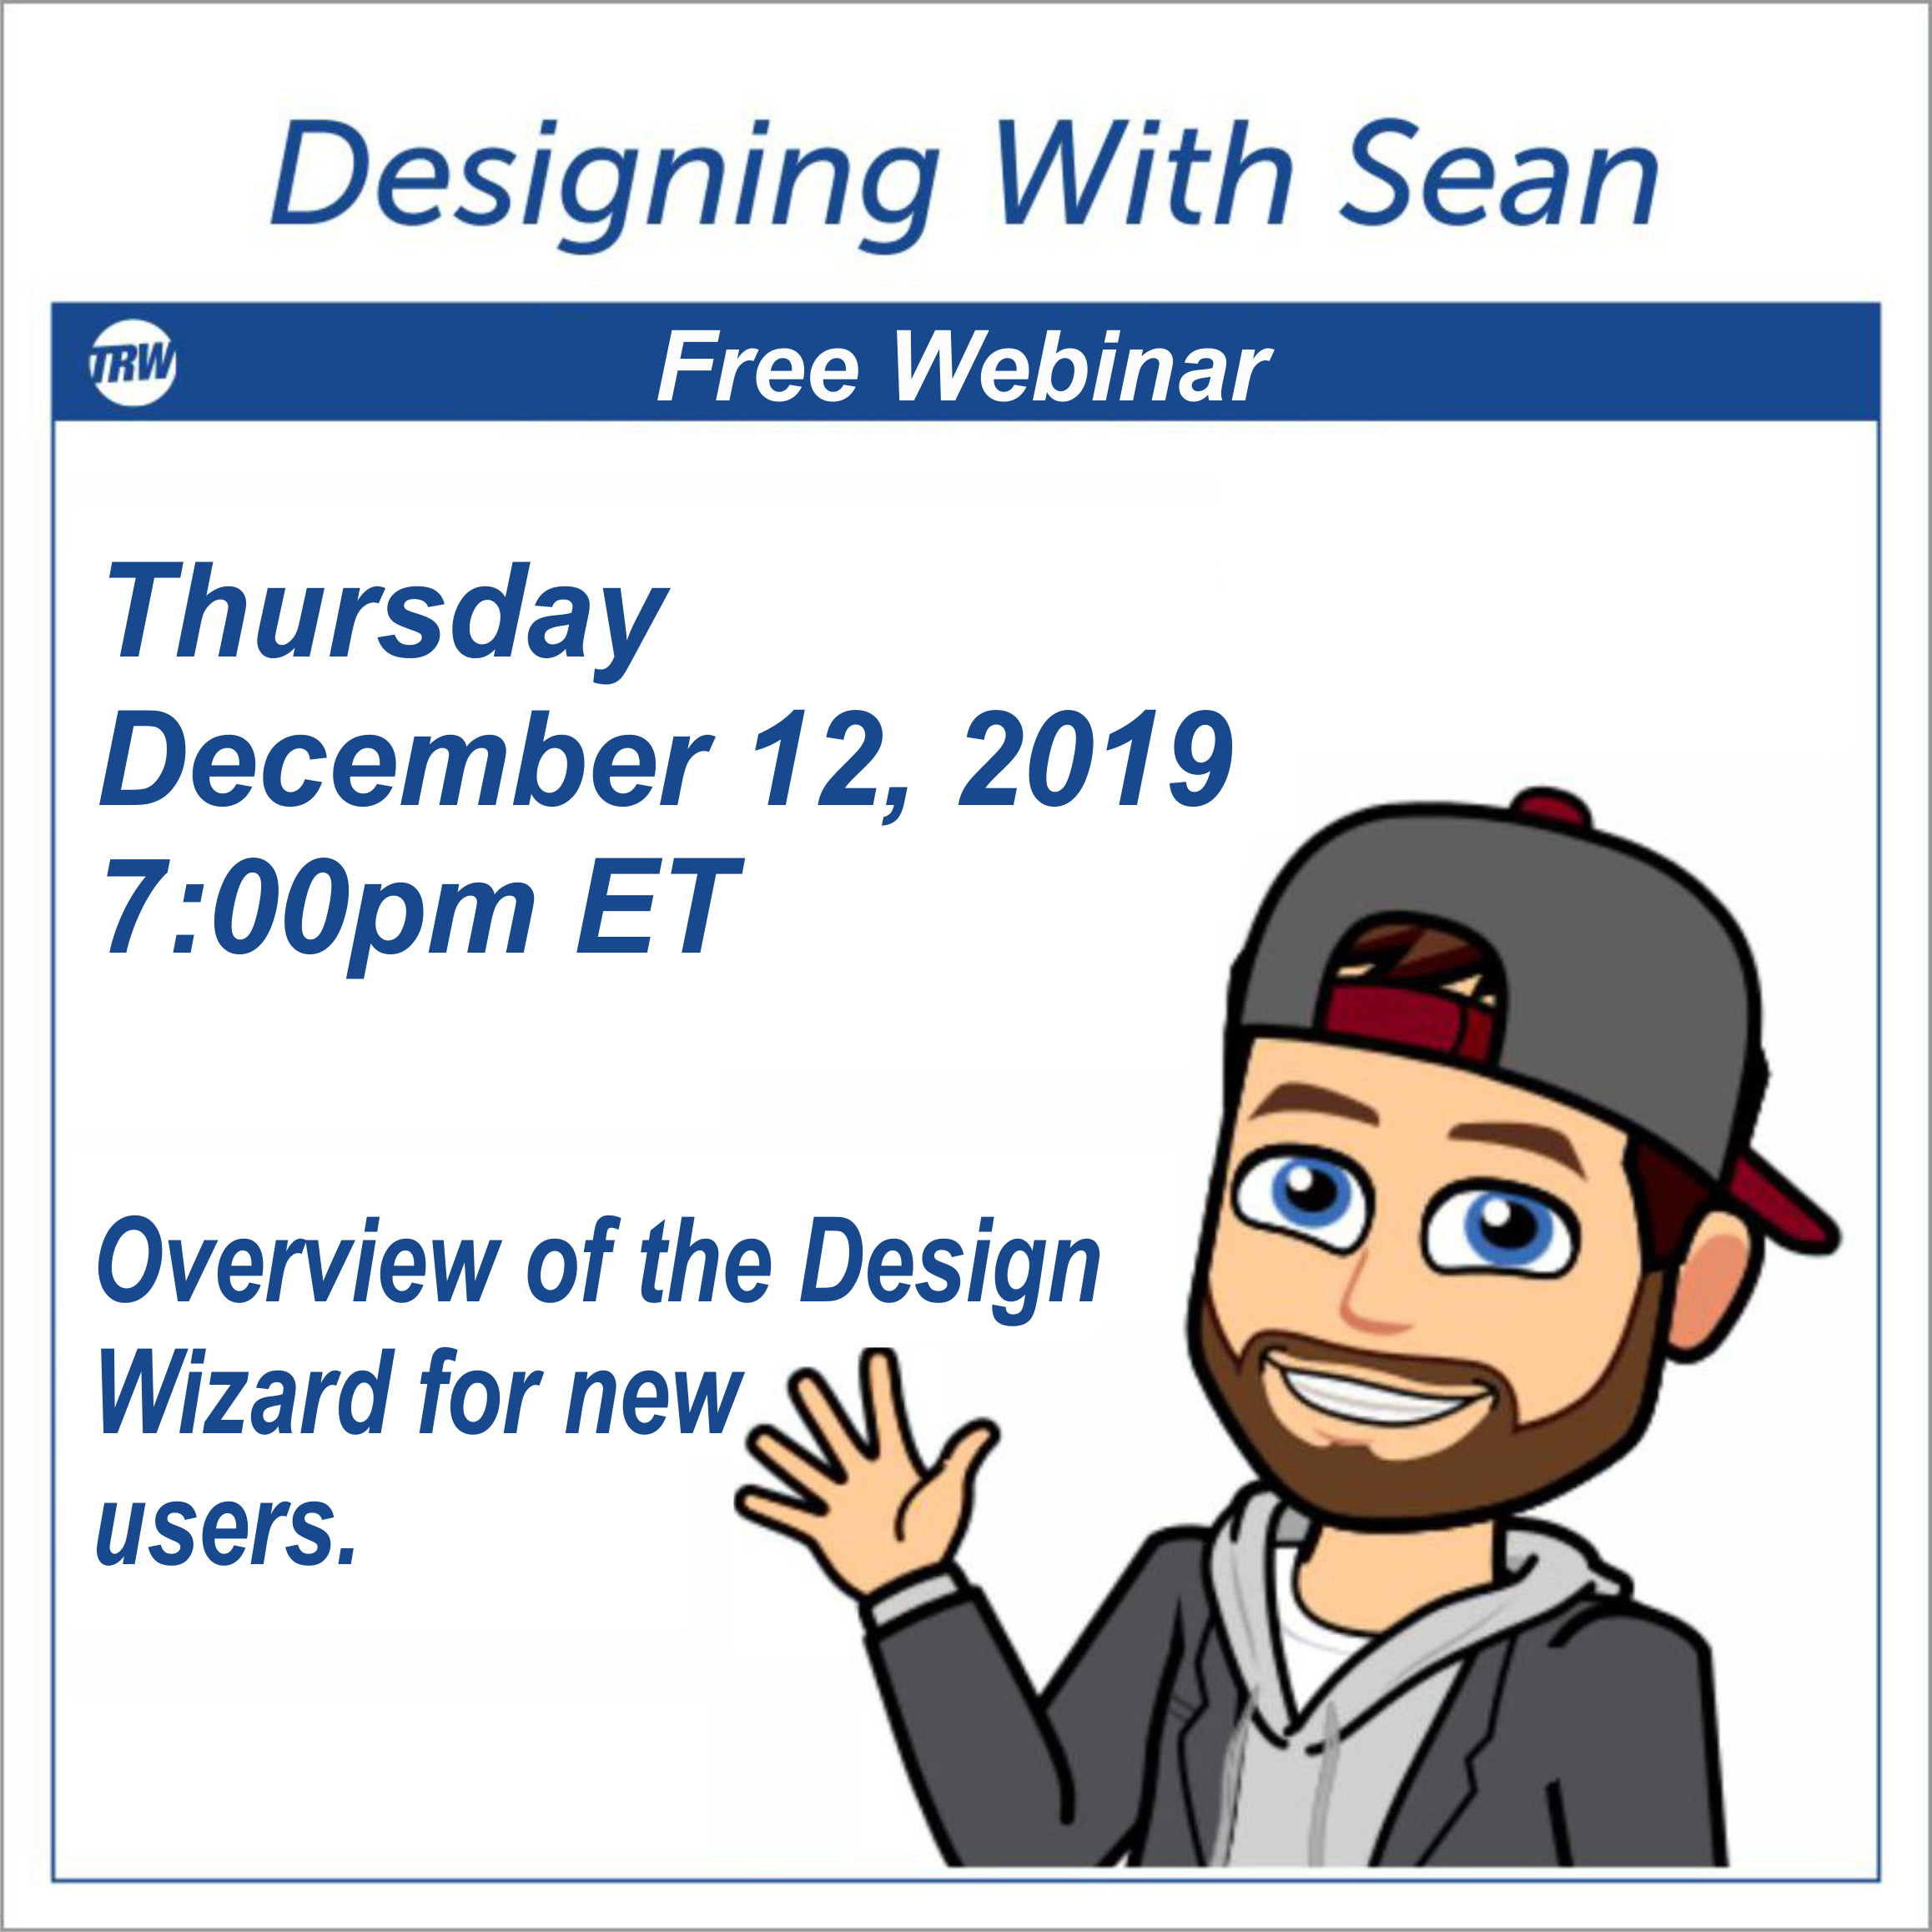 Designing with Sean | Overview of the Design Wizard for New Users - December 12th, 2019